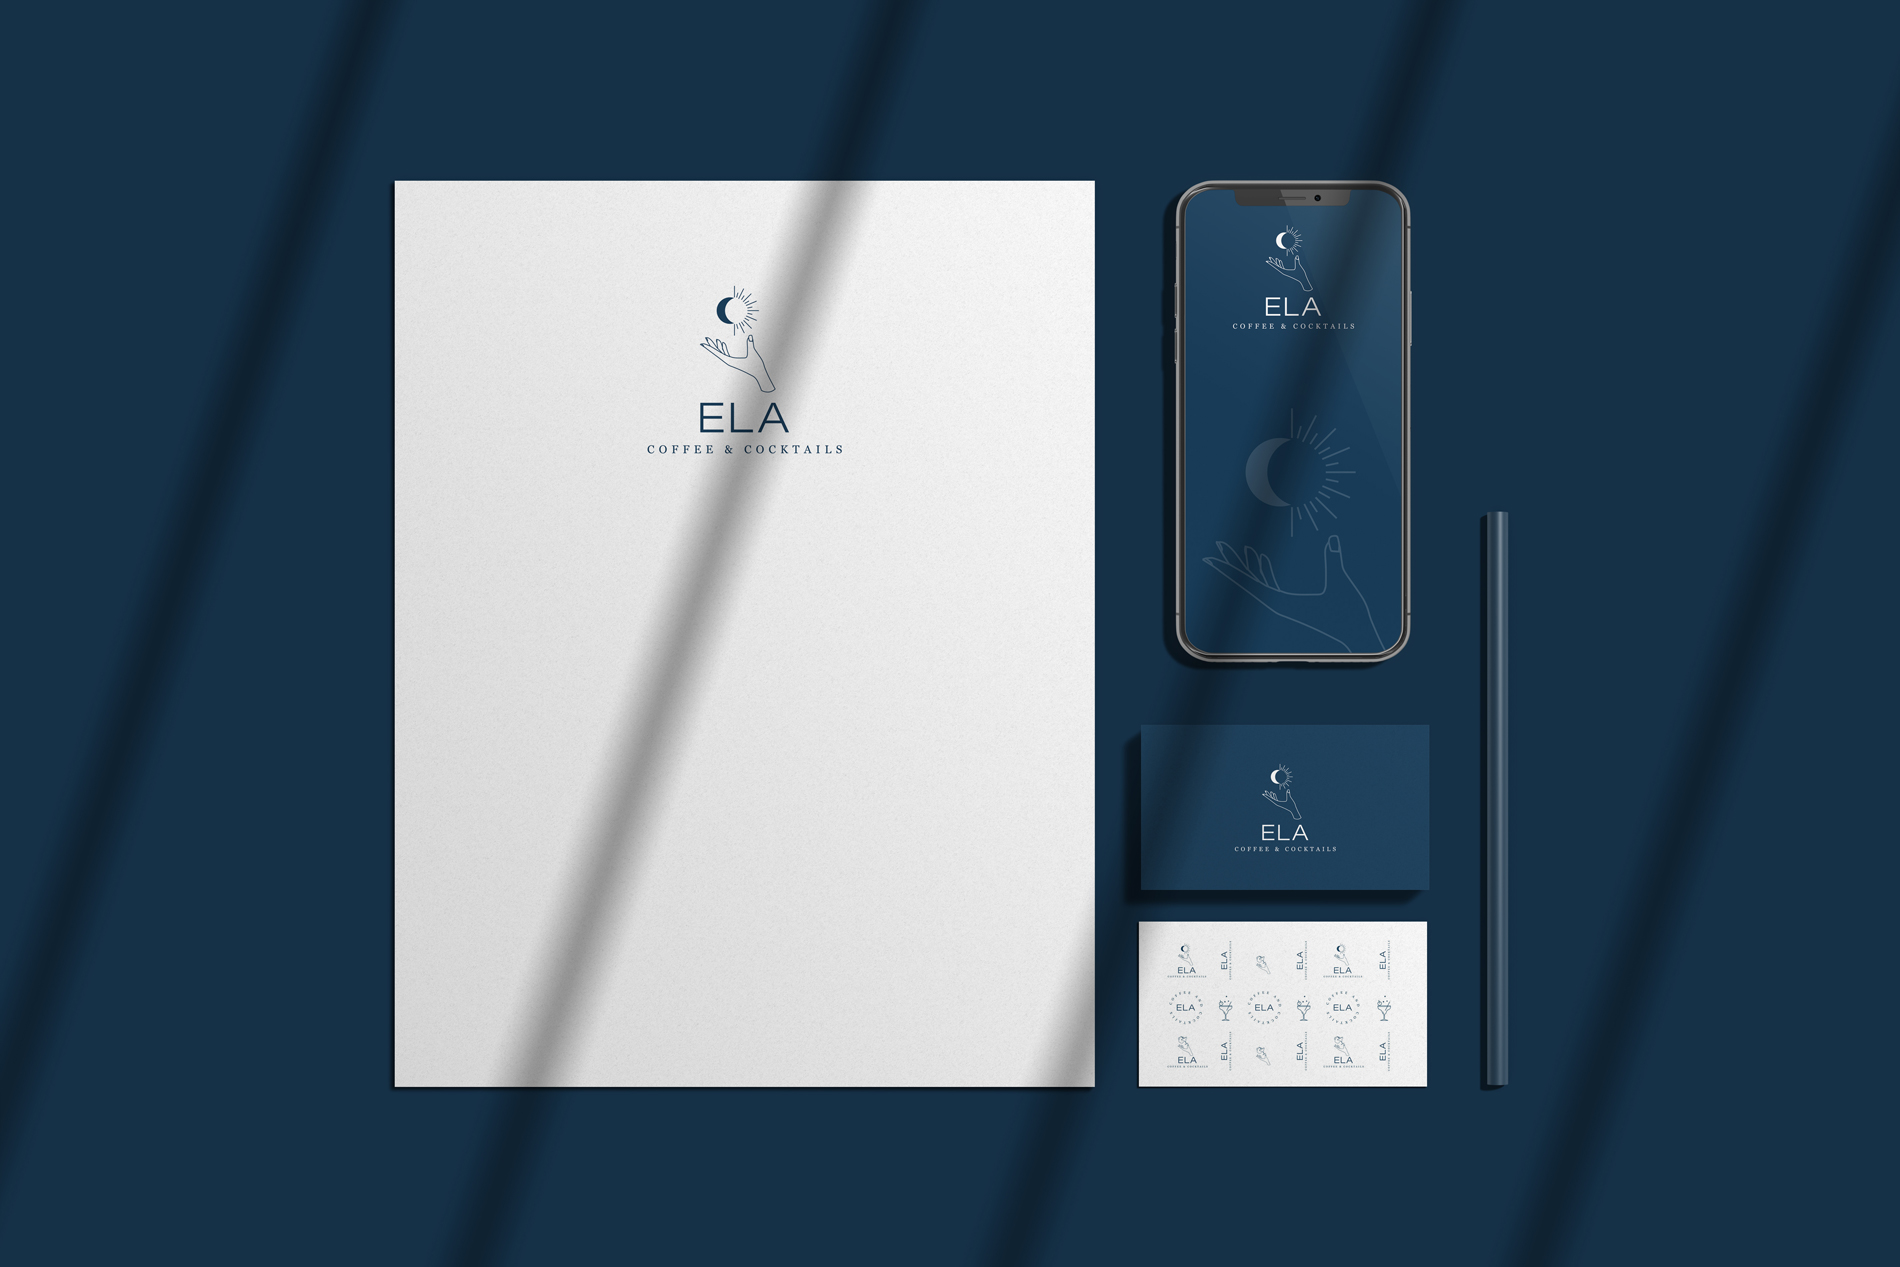 ela-coffee-branding-corporatedesign-gassermiesch